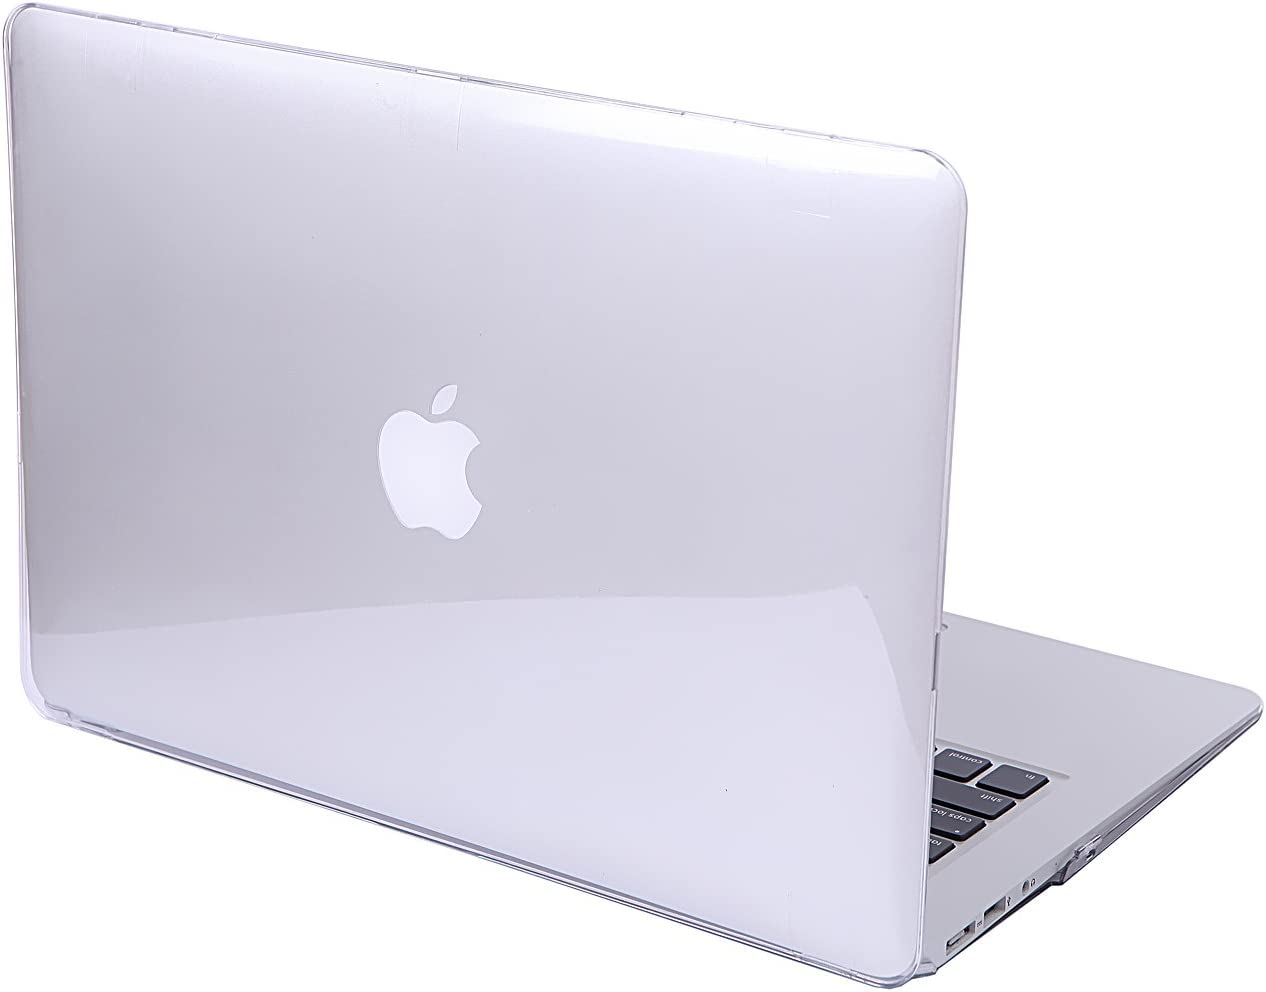 HDE Clear Plastic Hard Shell Case for Apple MacBook Air 13 inch (Models: A1369 / A1466), Crystal Clear